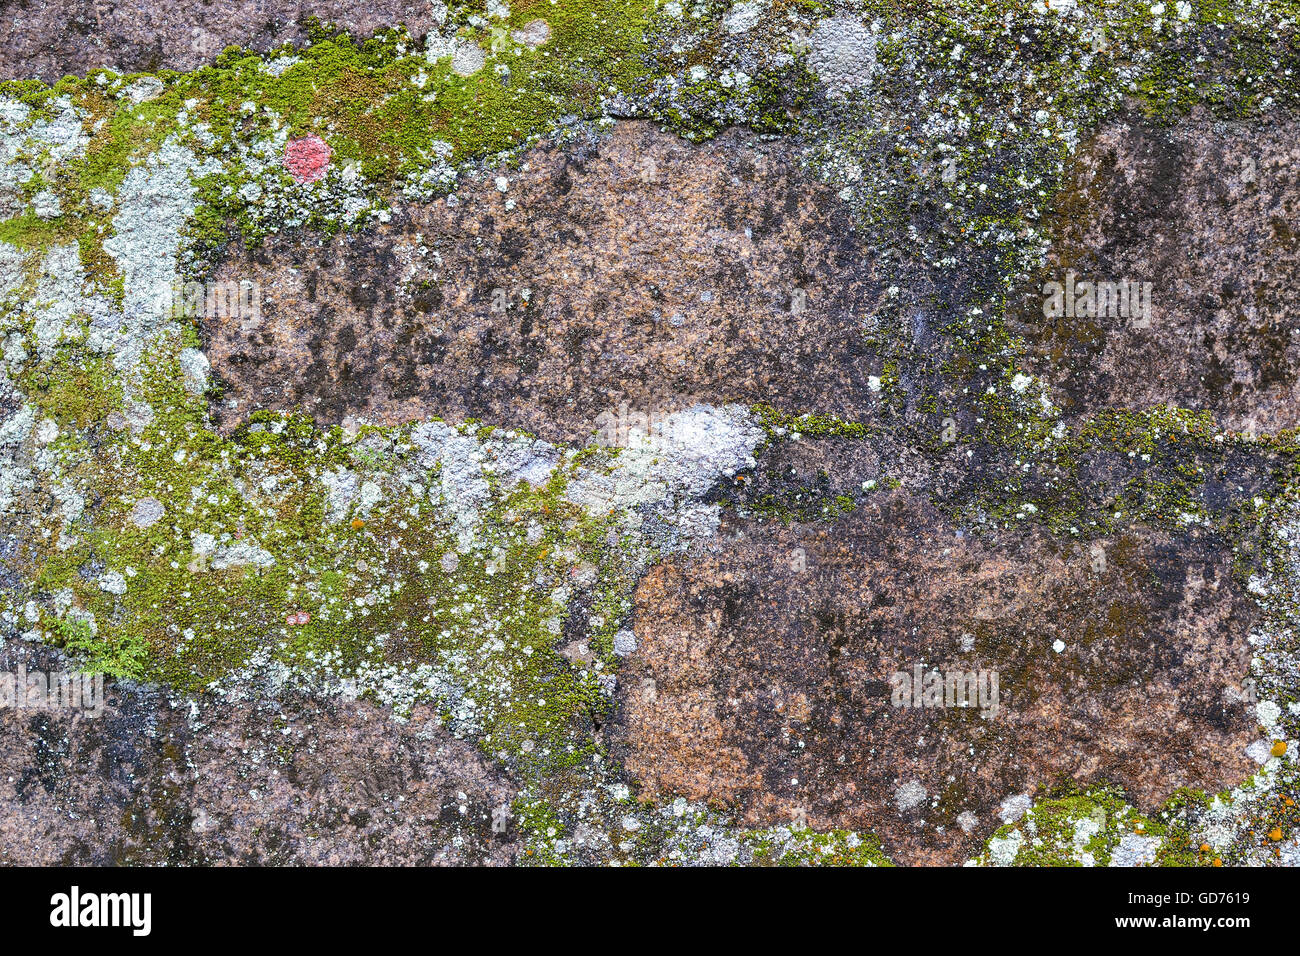 Rock, mold, moss and liken background and texture - Stock Image